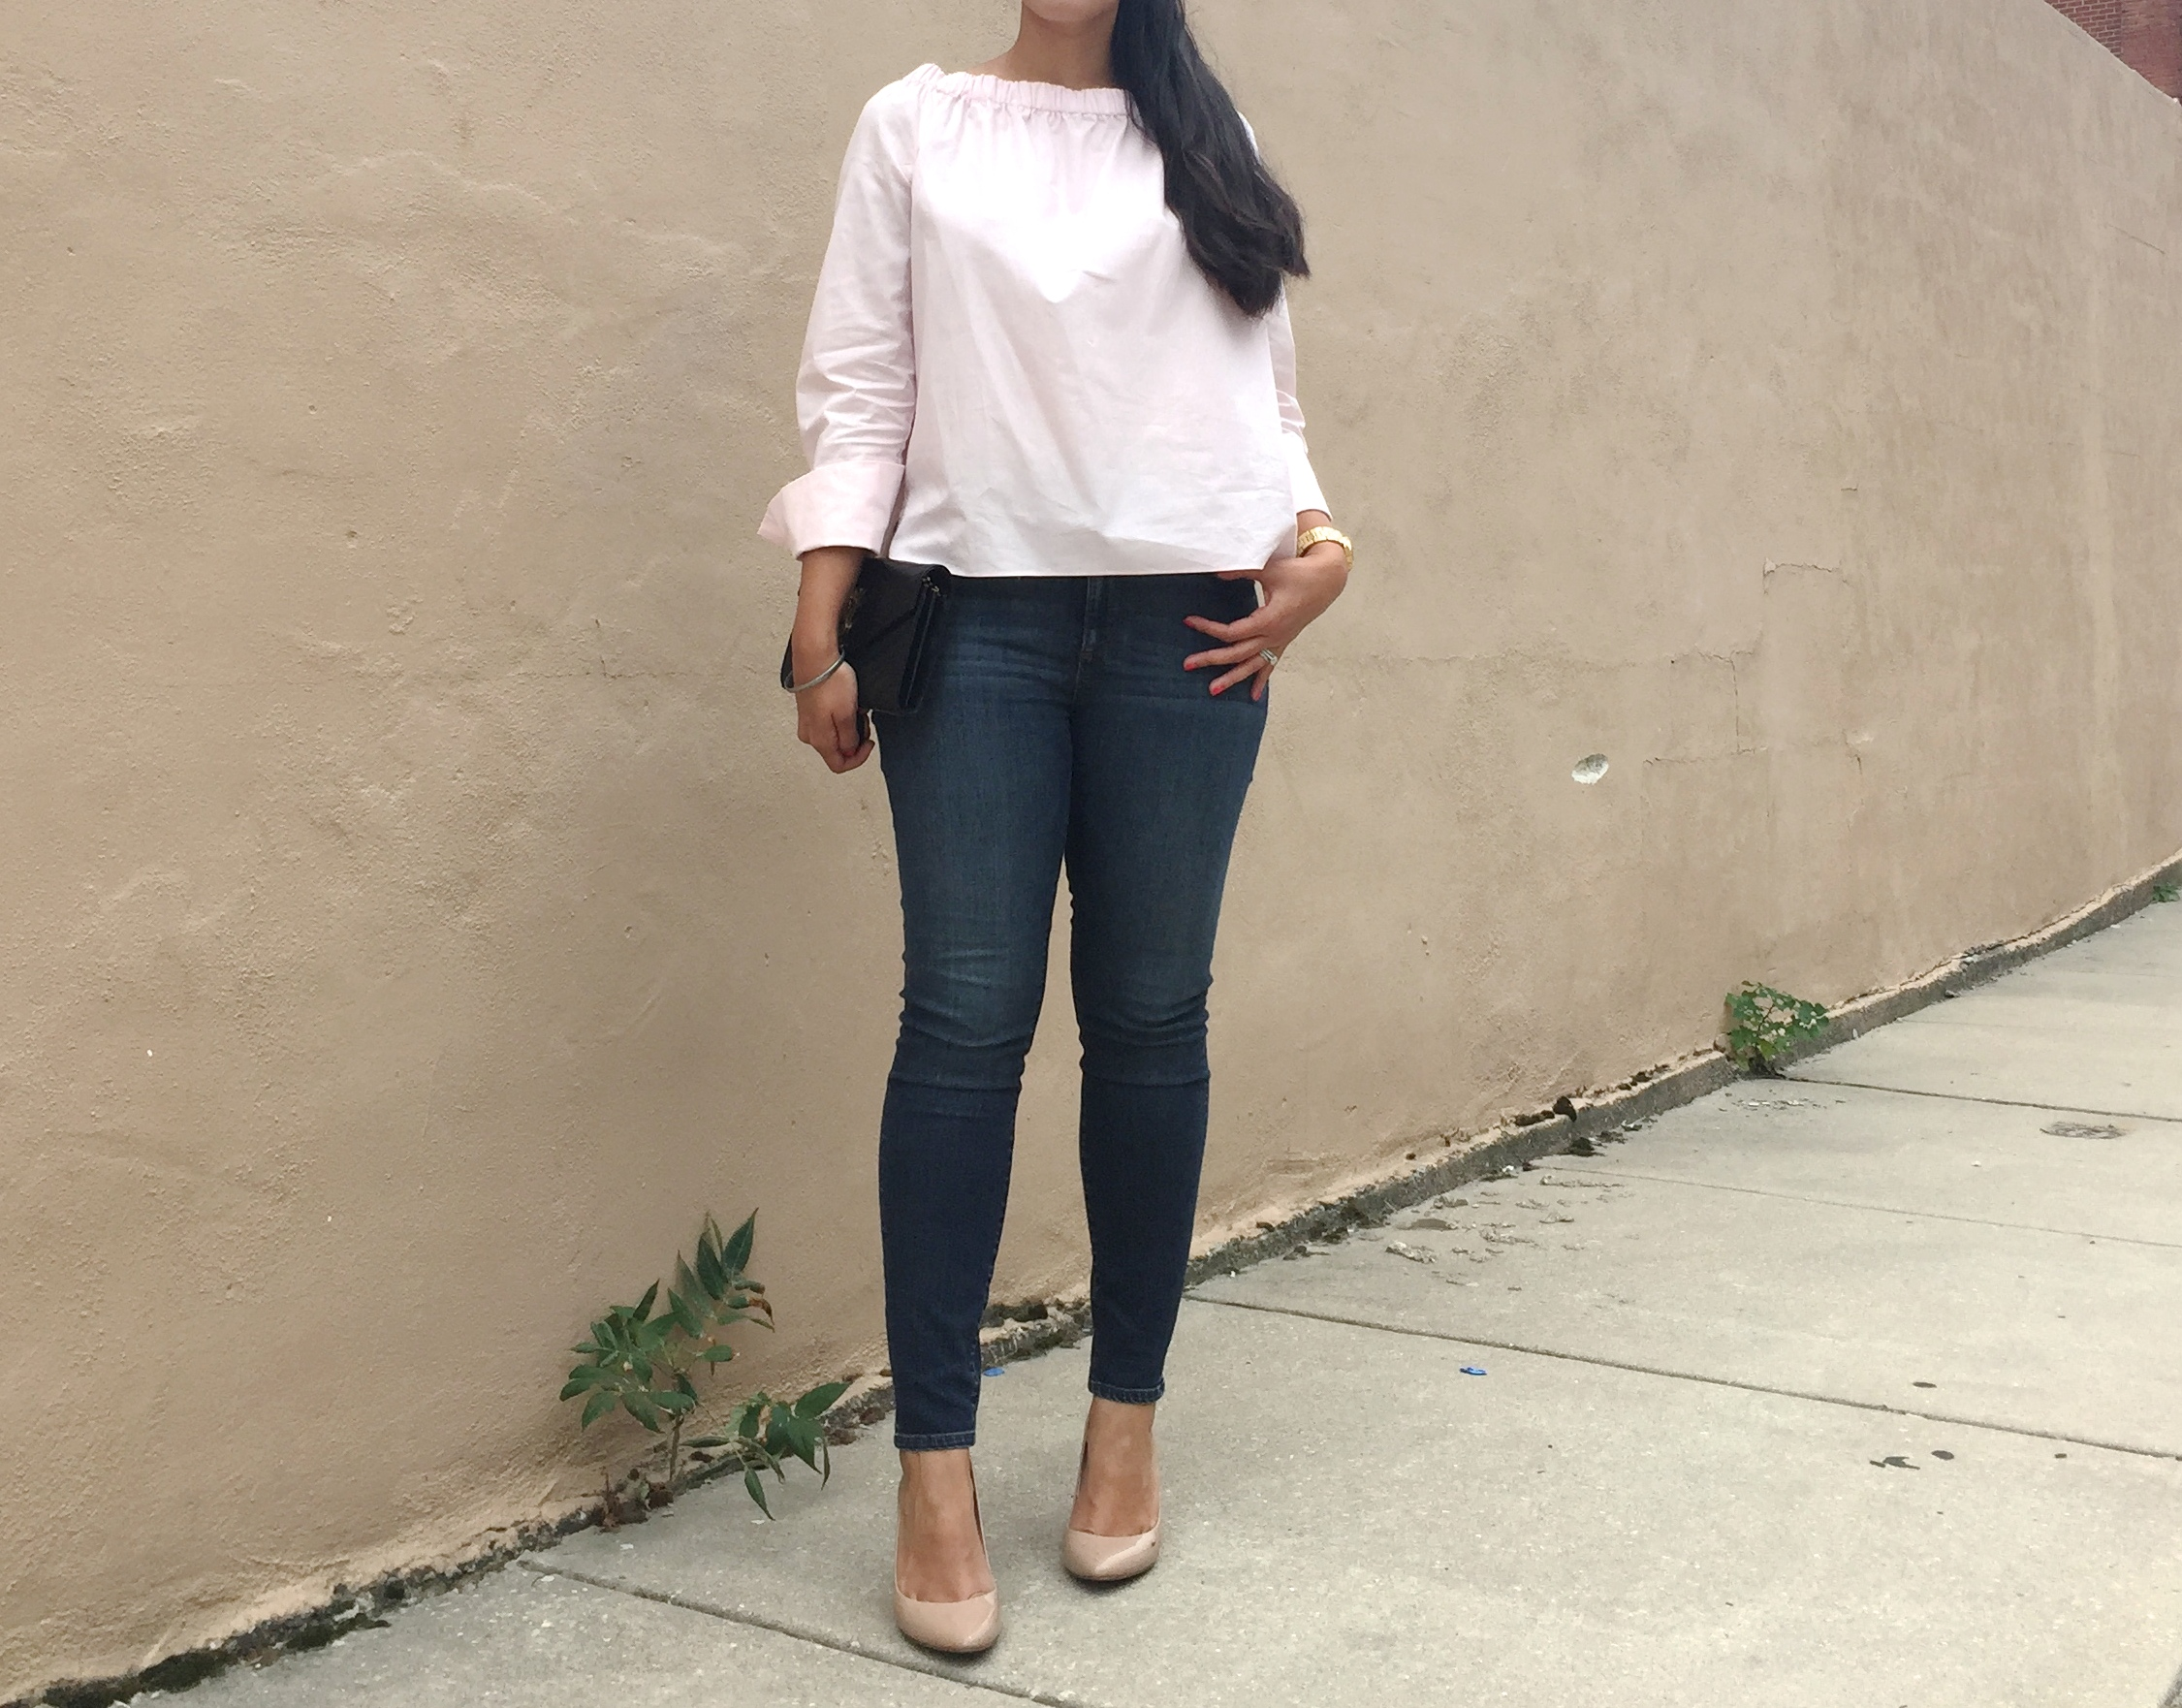 Off the shoulder outfit